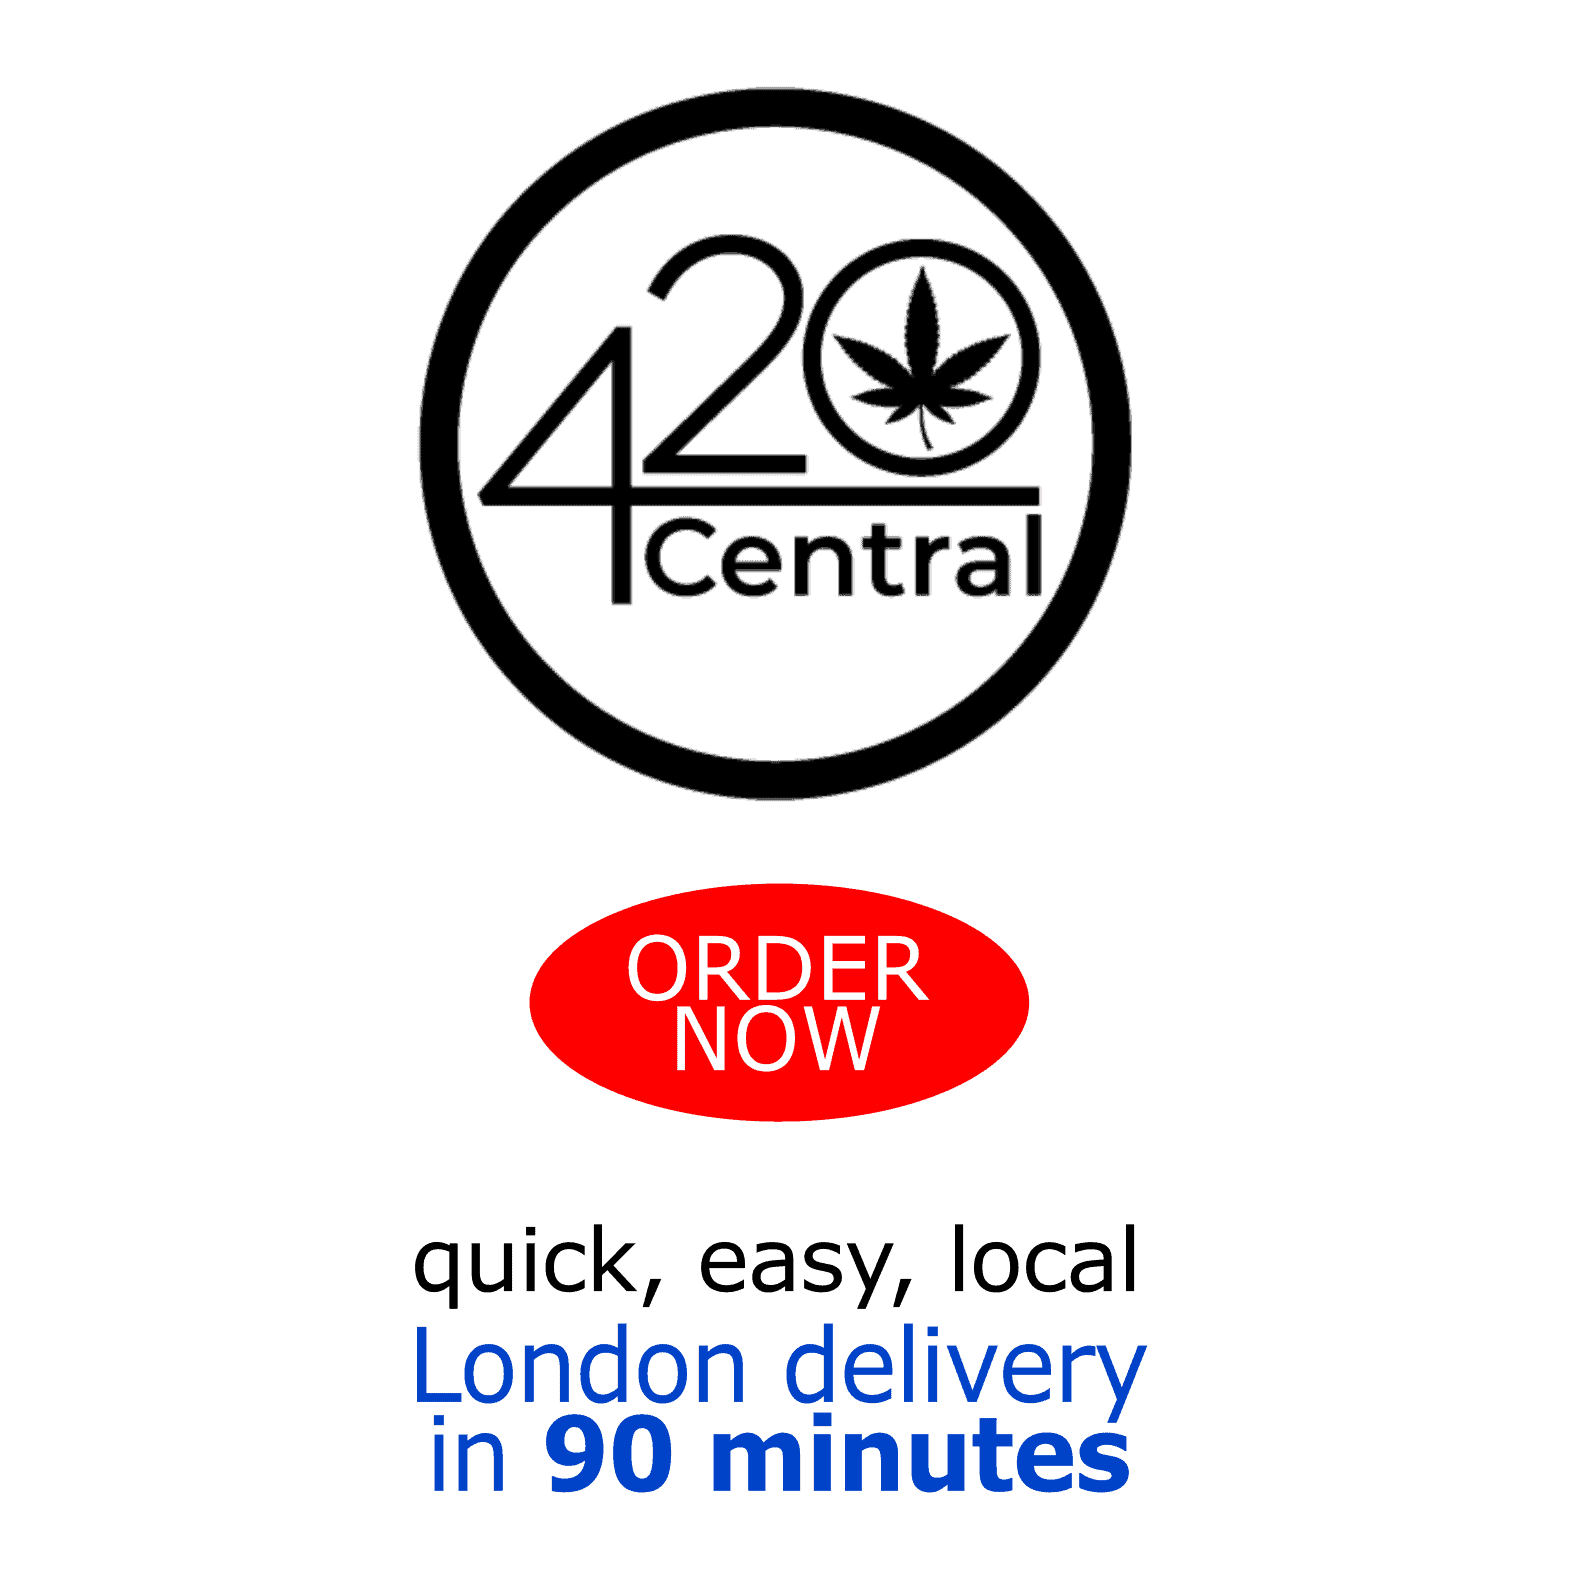 420 Central